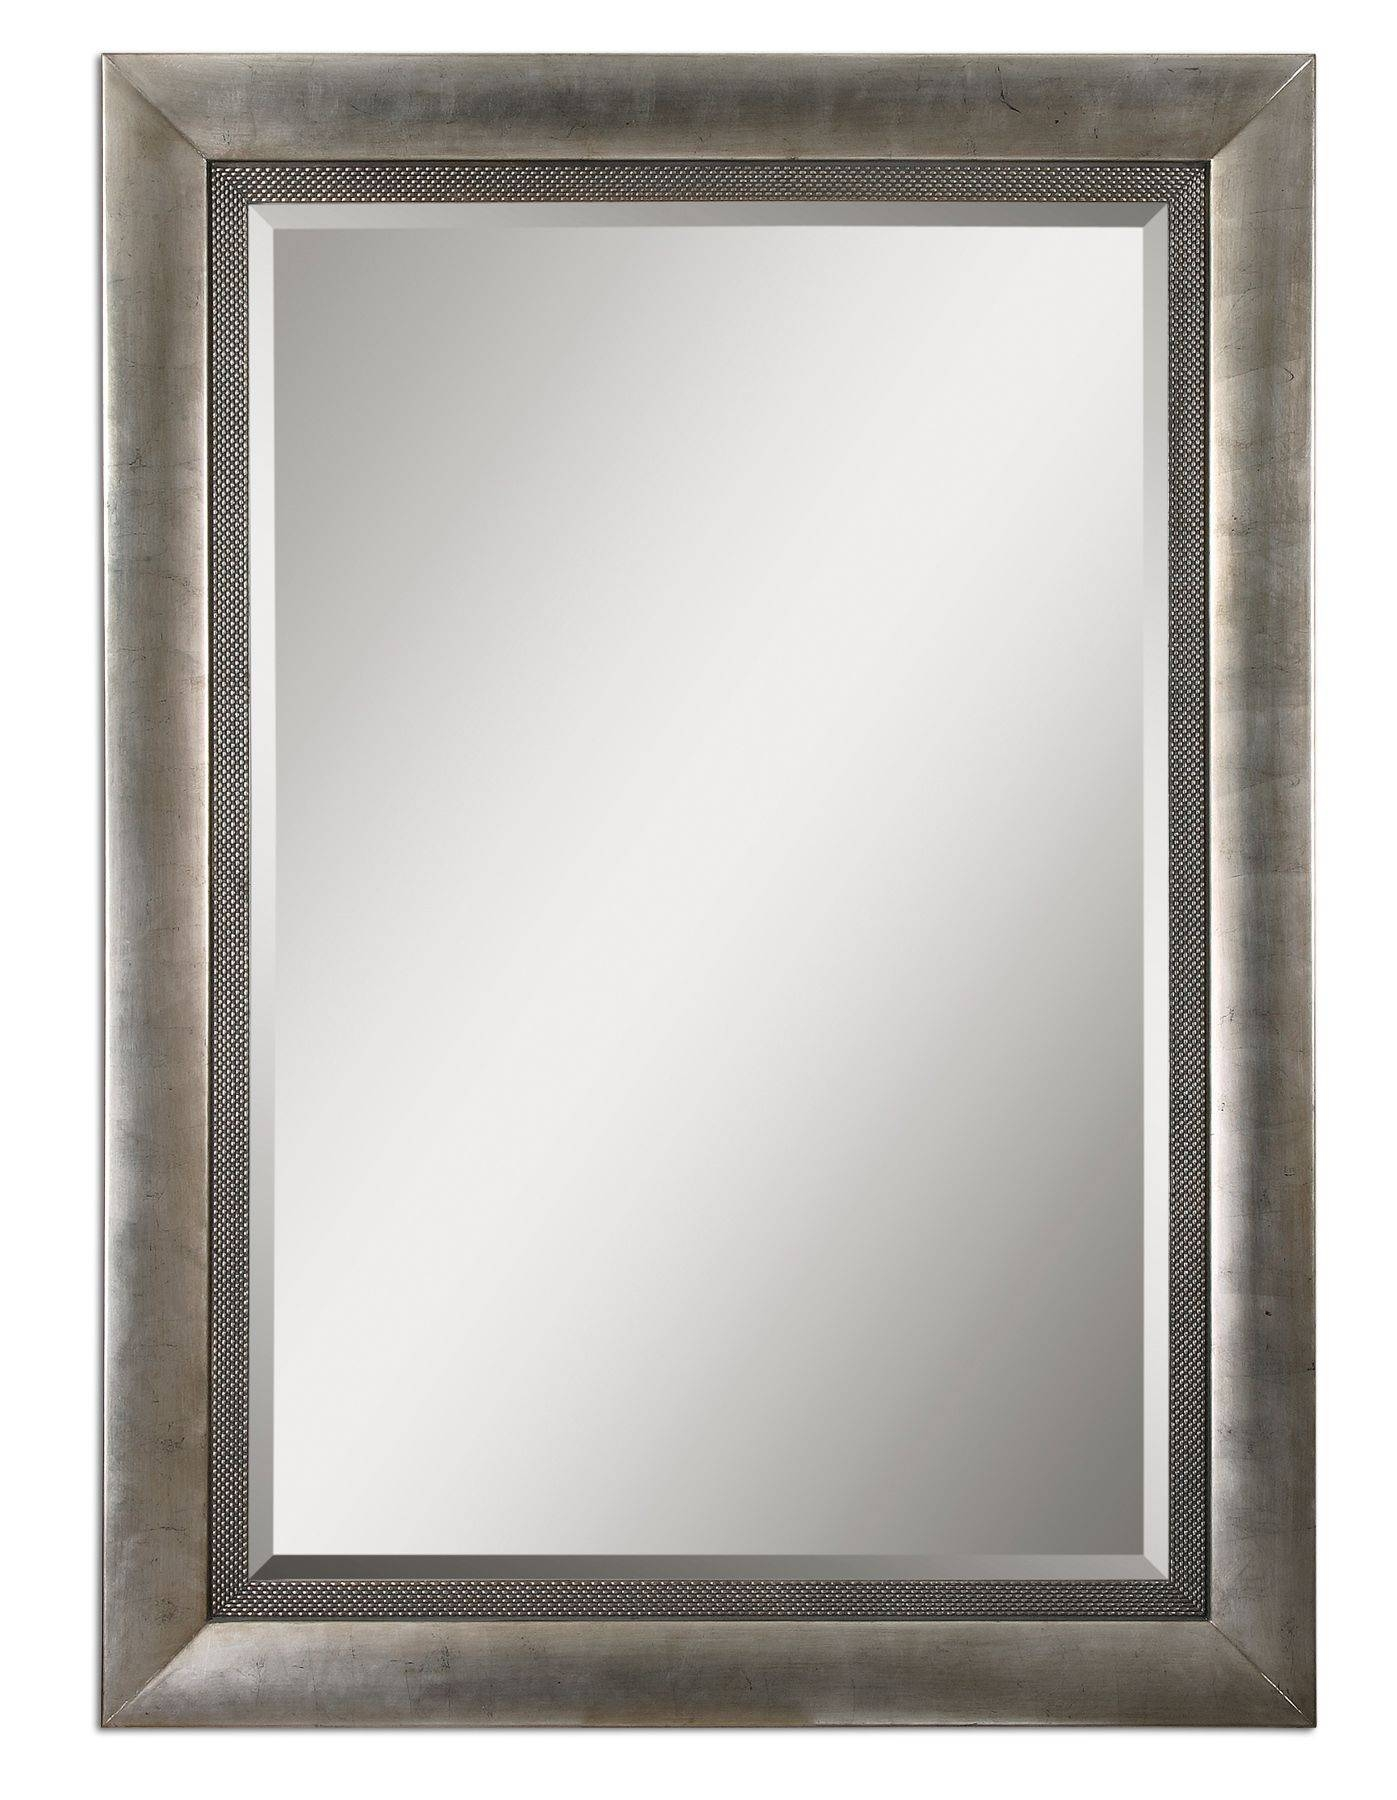 Uttermost Gilford Antique Silver Mirror 14207 throughout Silver Antique Mirrors (Image 24 of 25)